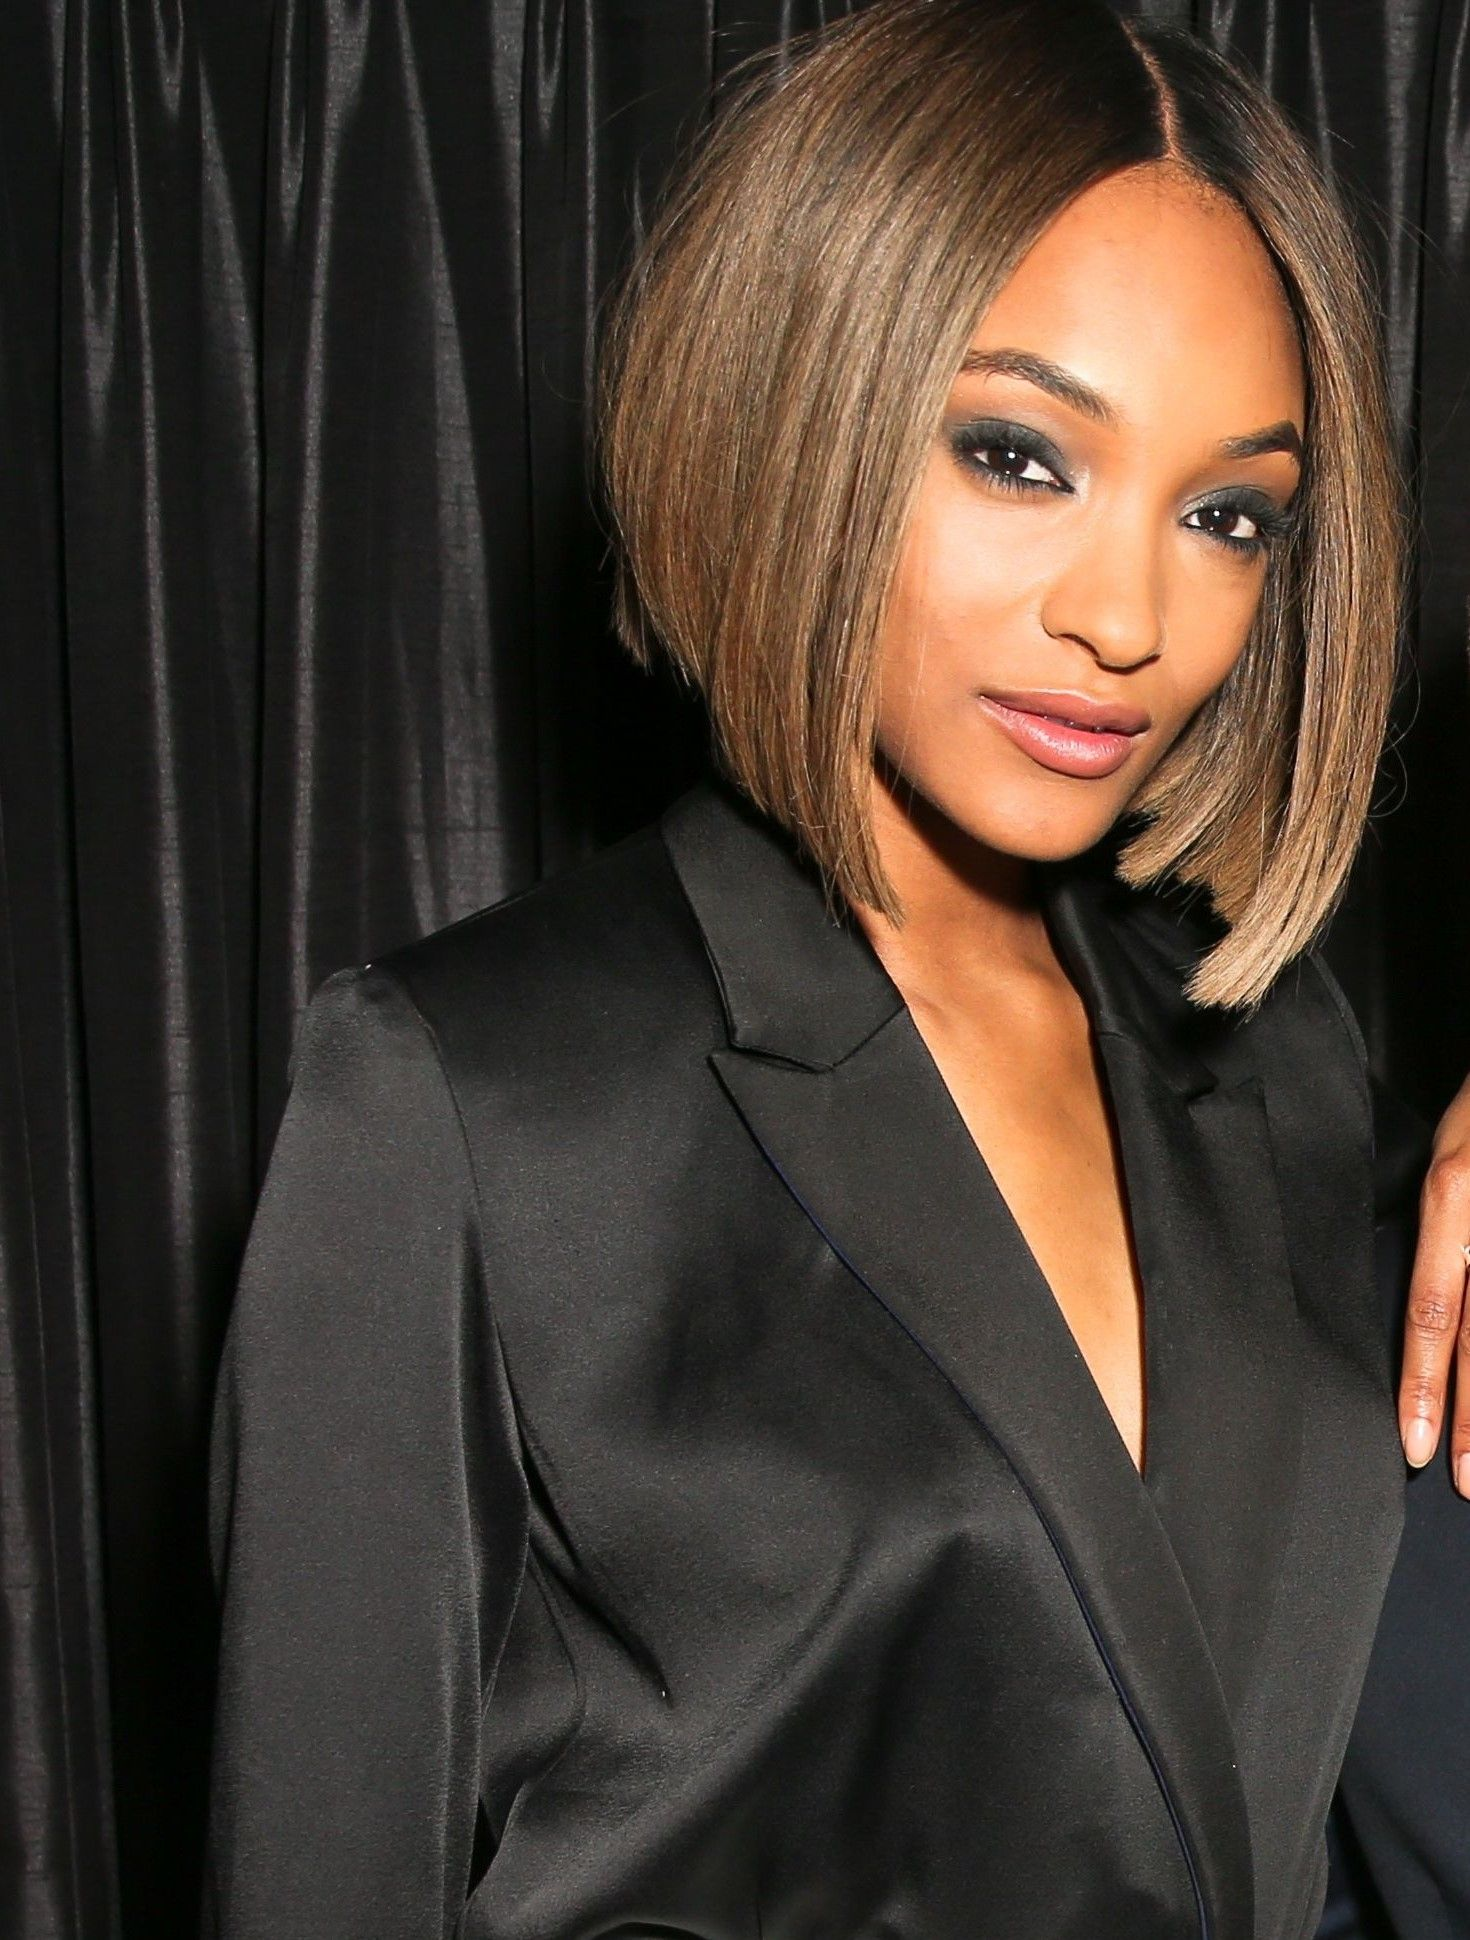 Jourdan dunn with a smooth and sleek caramel graduated bob hairstyle on the red carpet